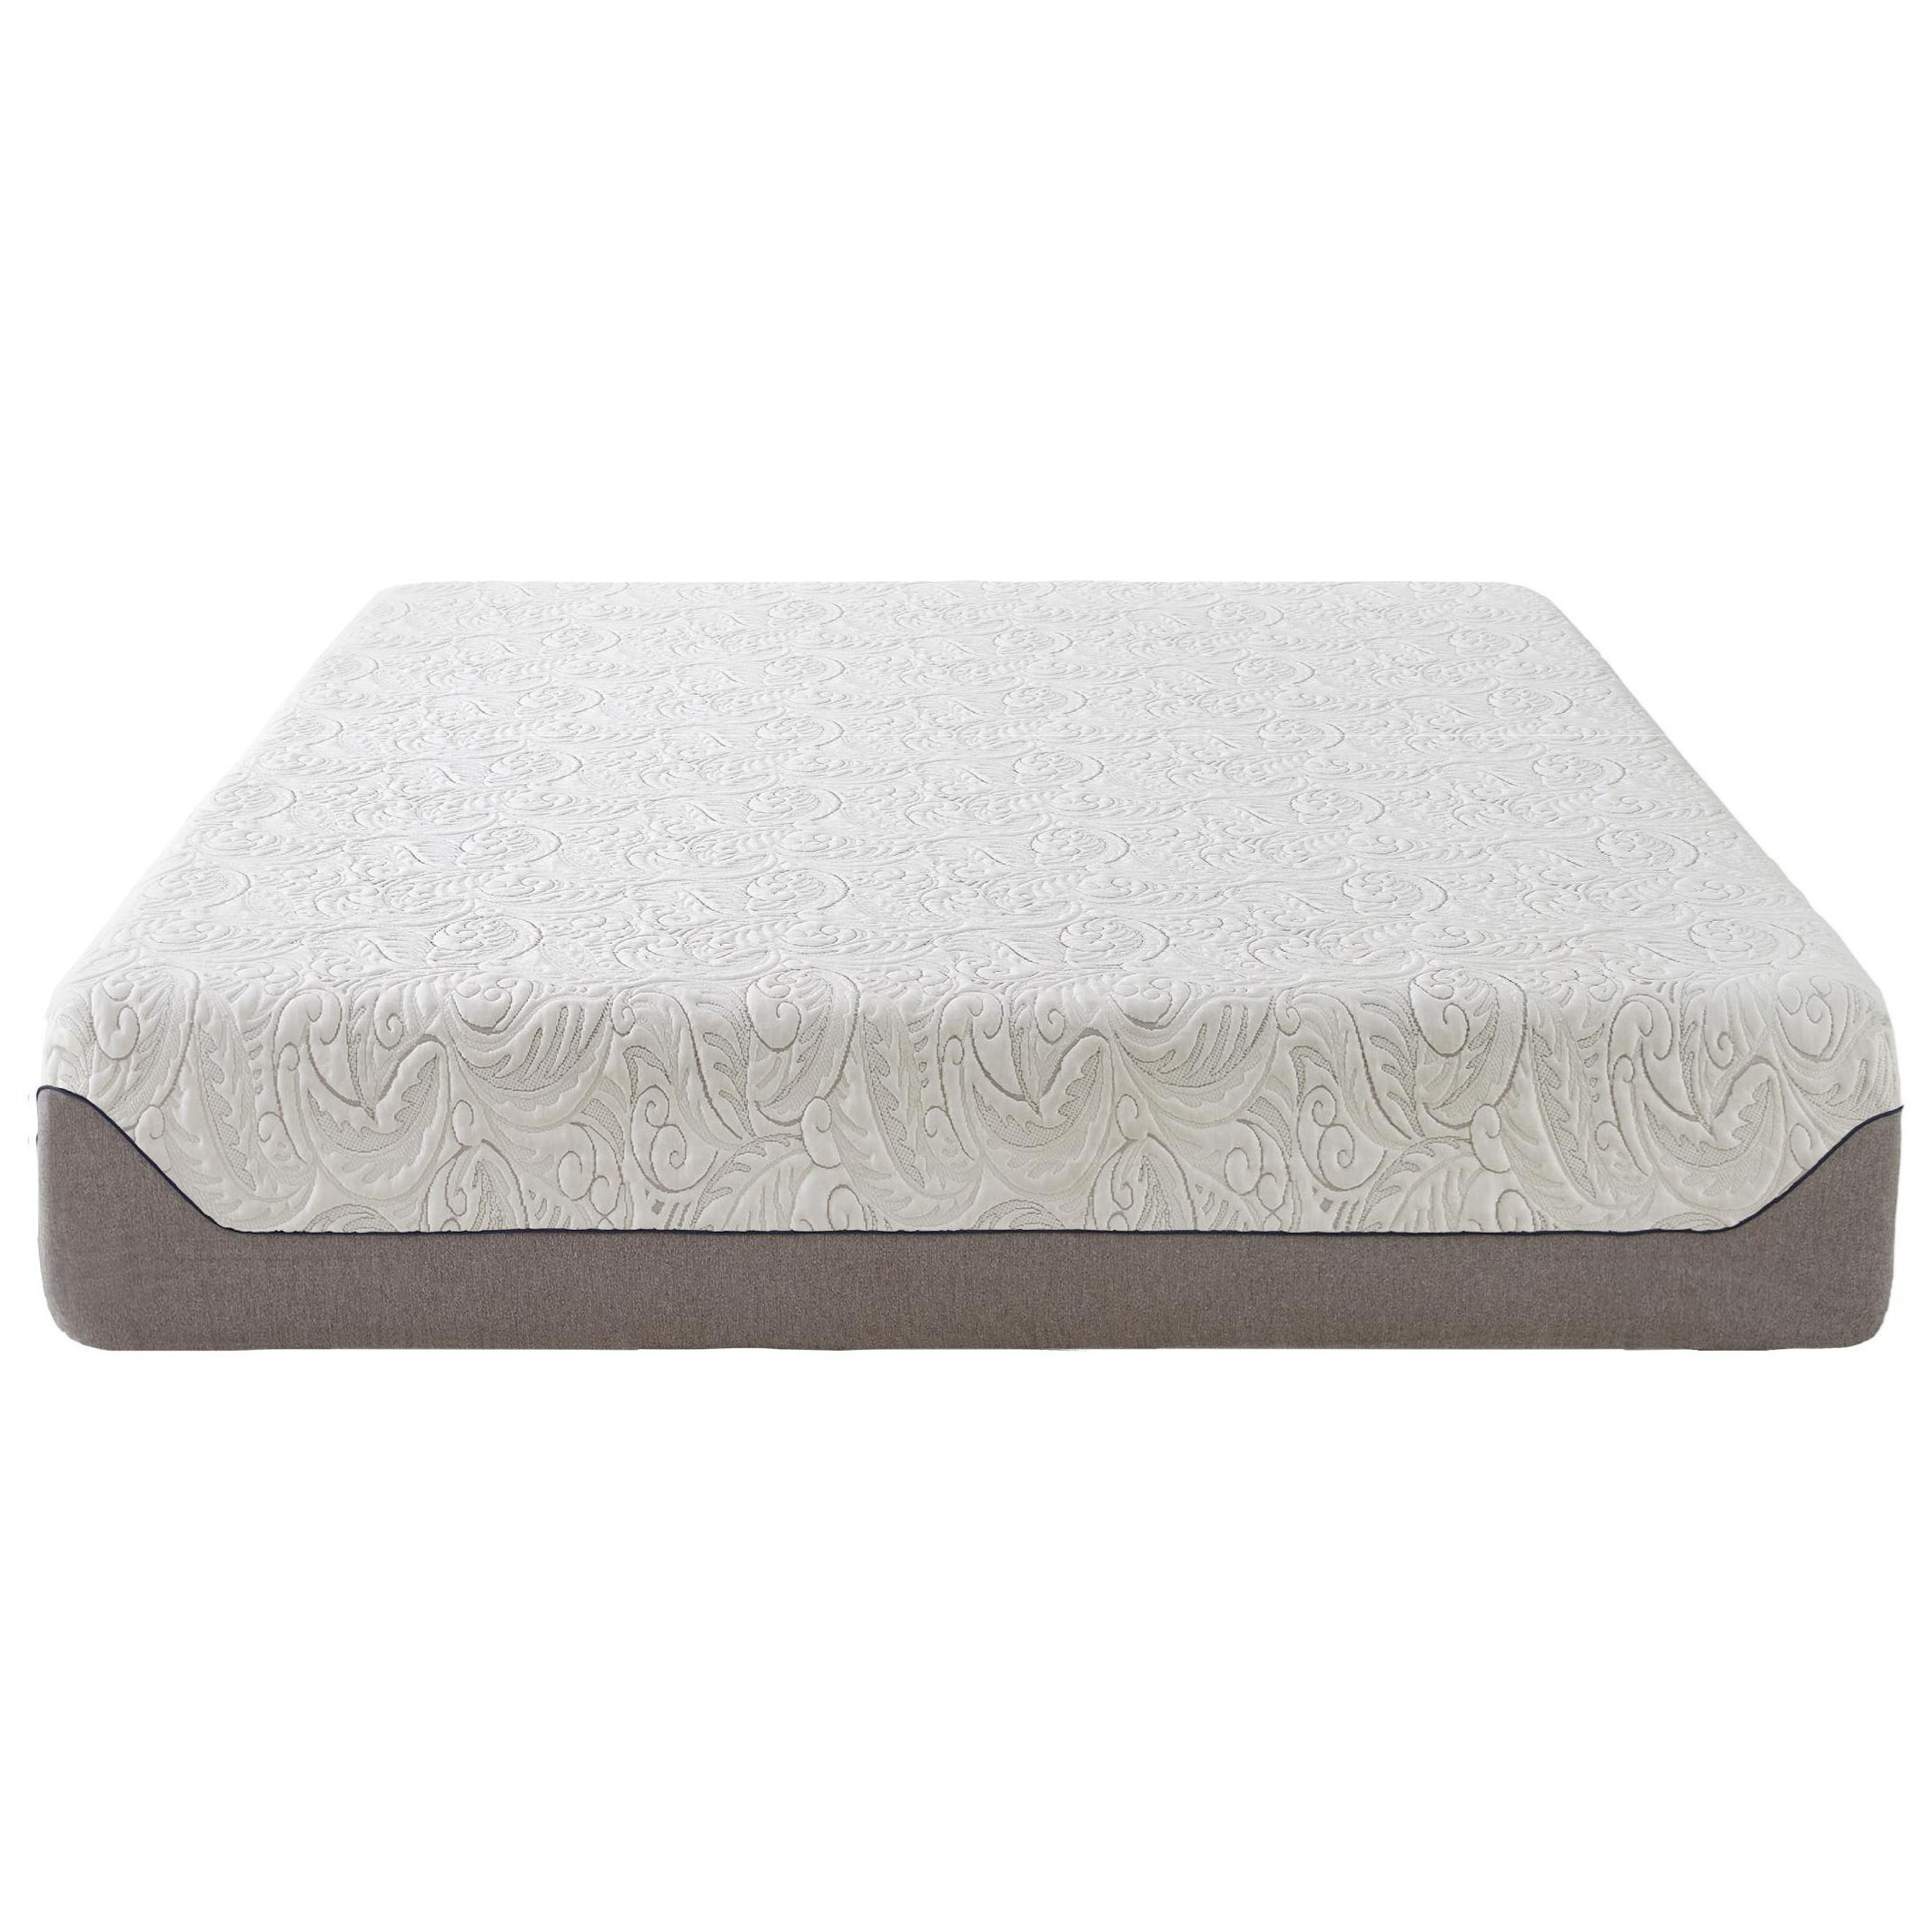 "5083 Ventura Grande Queen 8"" Gel Memory Foam Mattress by Boyd Specialty Sleep at Beds N Stuff"